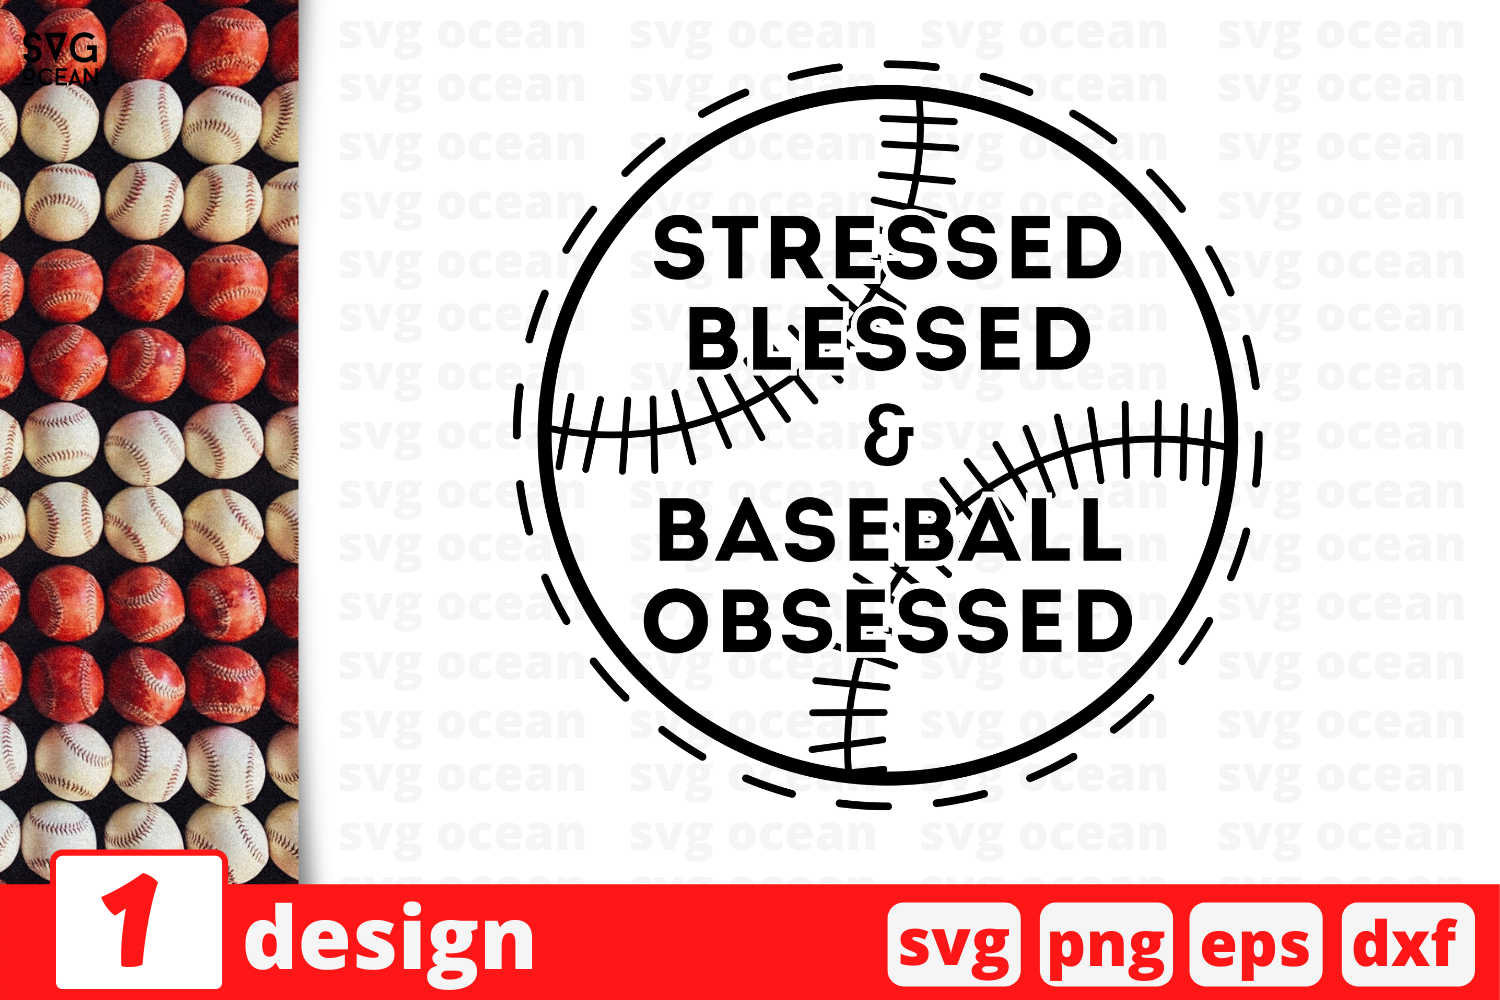 Download Free 1 Stressed Blessed And Baseball Obsessed Graphic By Svgocean Creative Fabrica for Cricut Explore, Silhouette and other cutting machines.